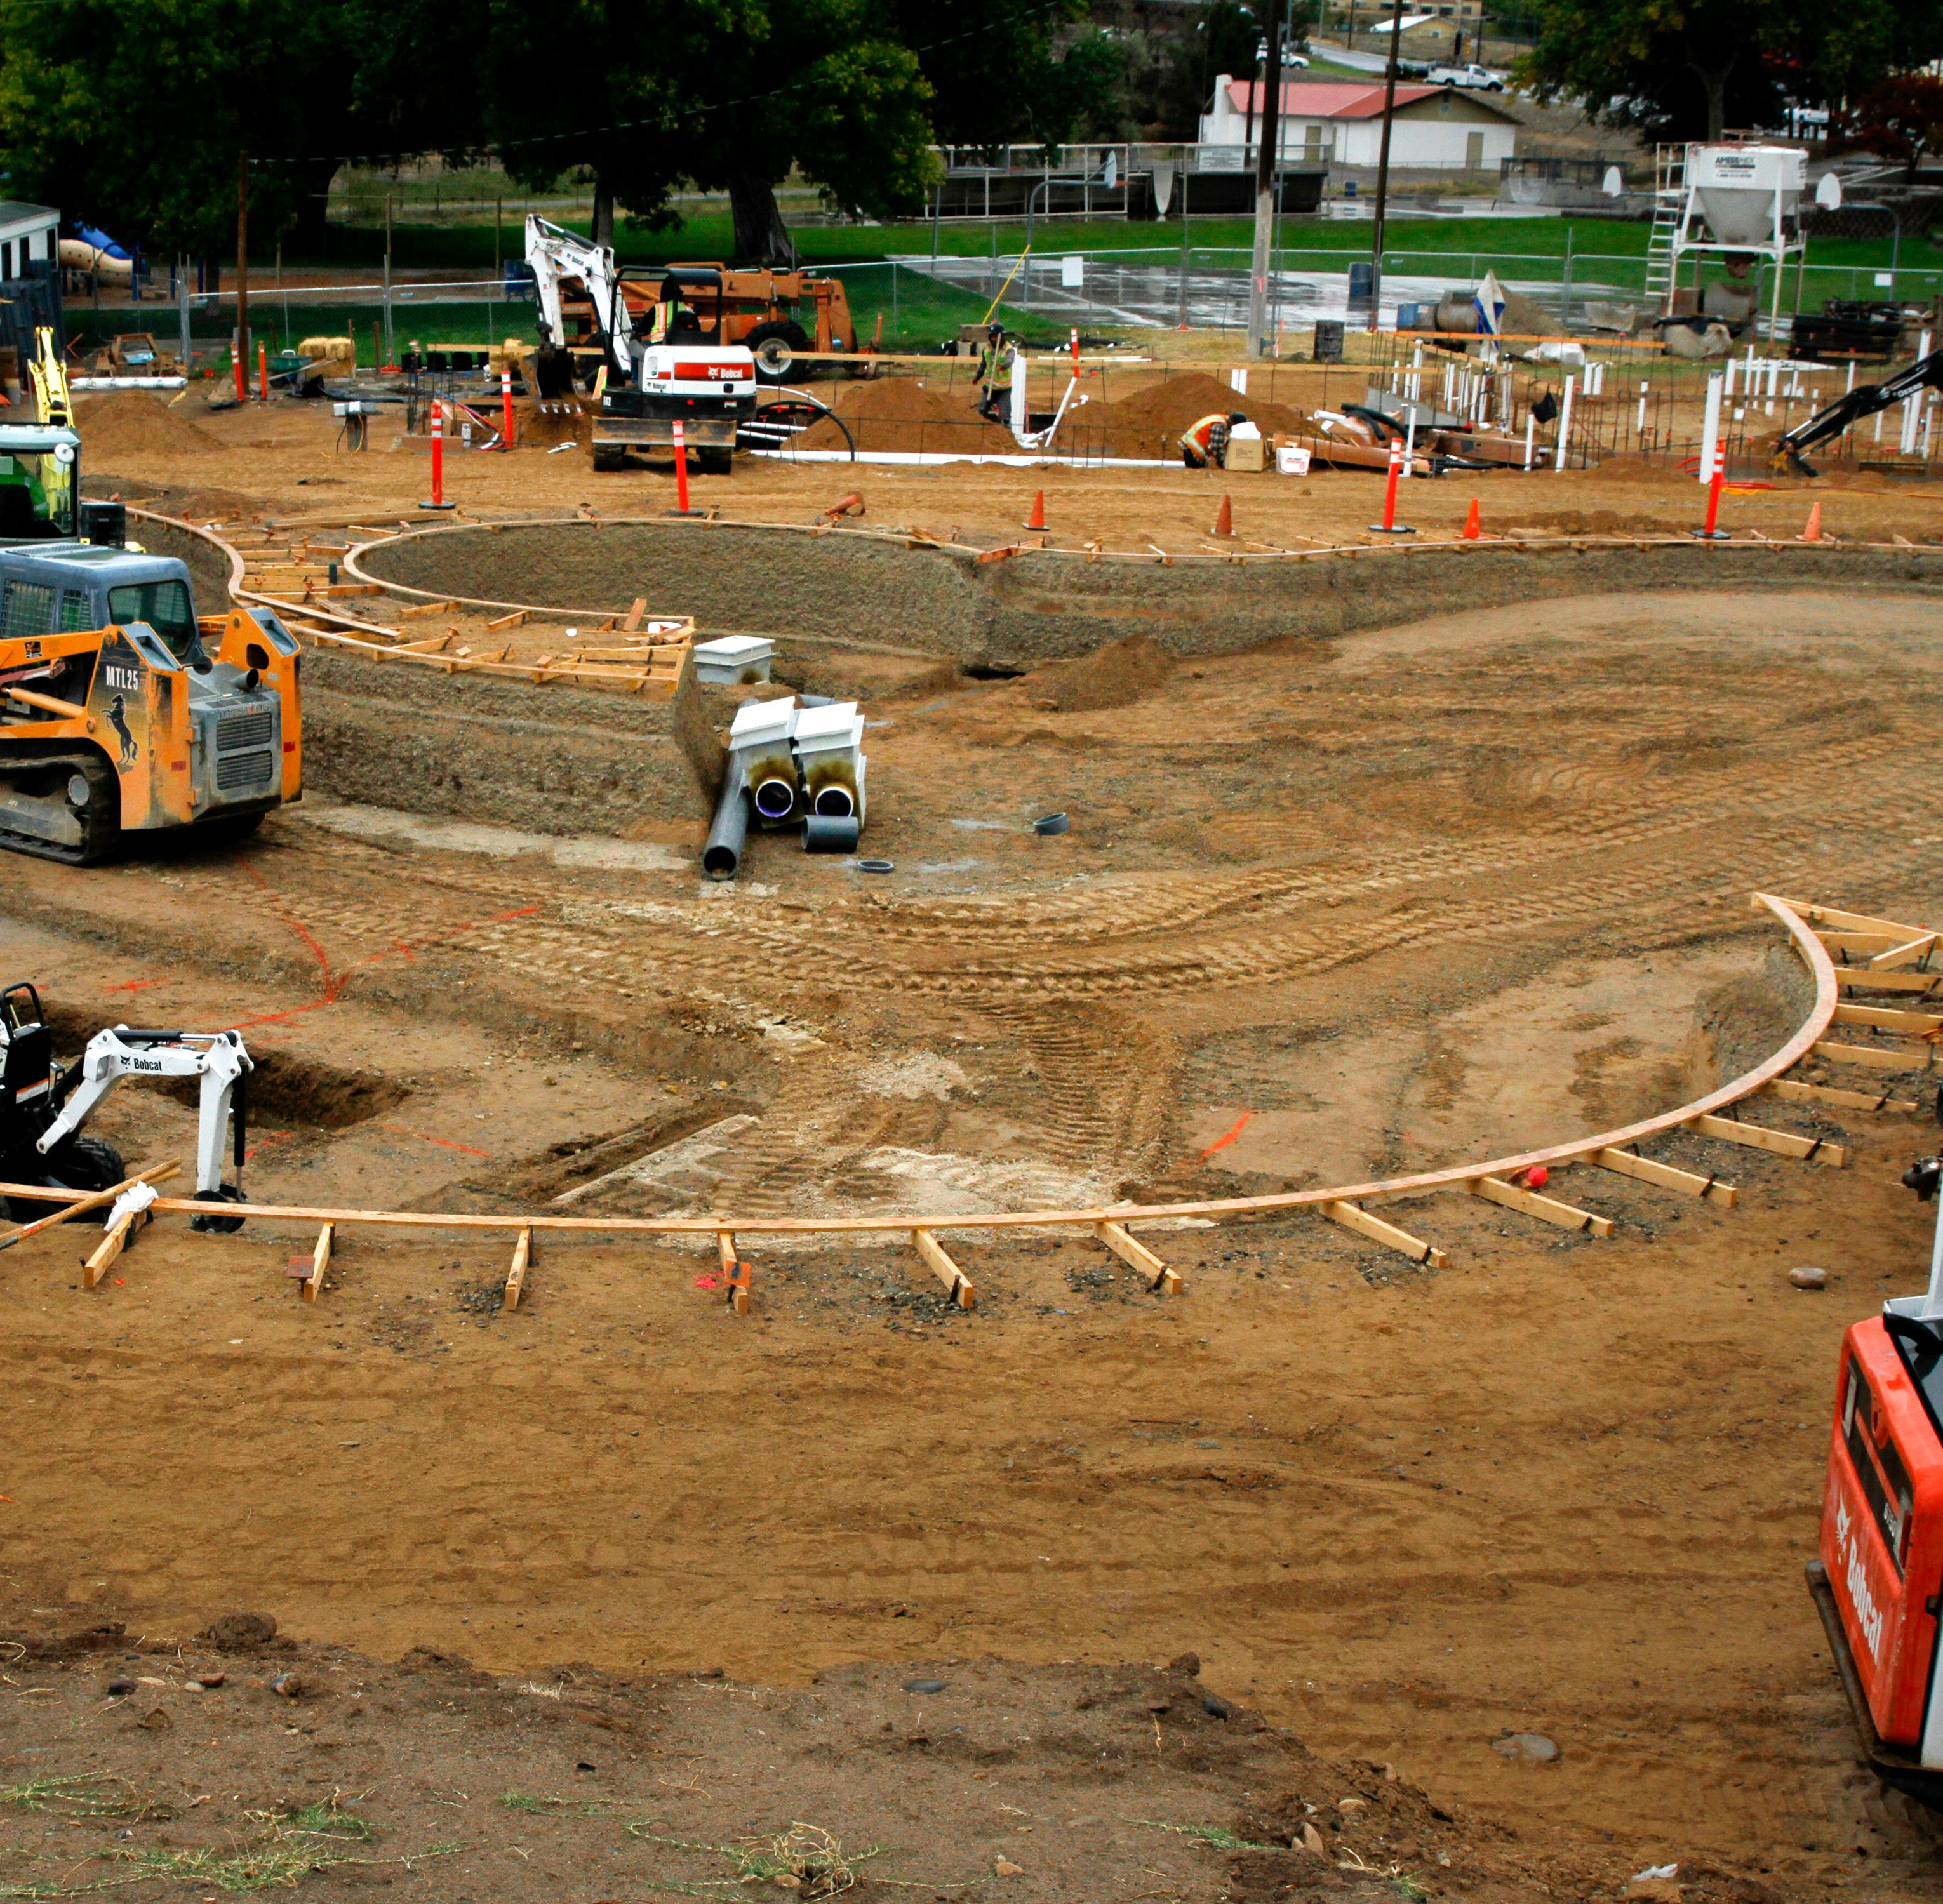 Bisti Bay at Brookside Park: New name chosen for future water park